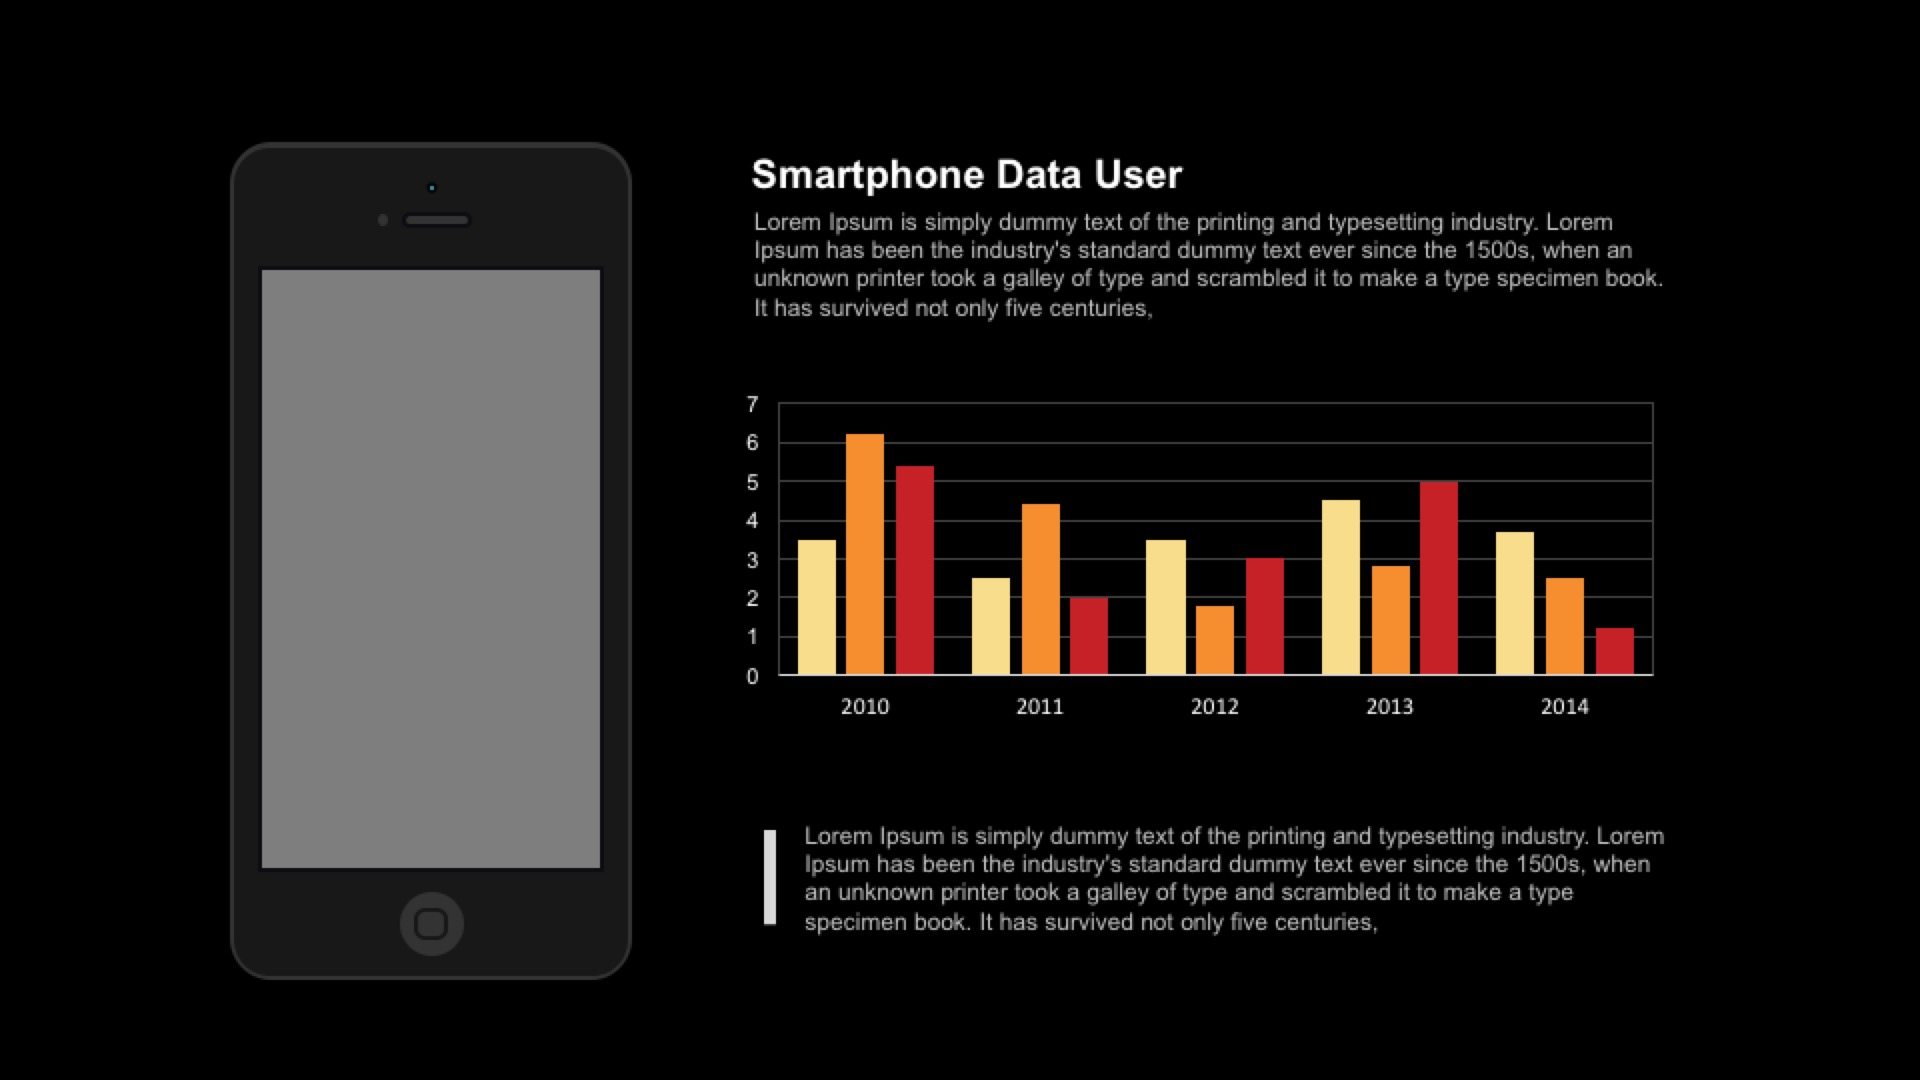 Smartphone Data User